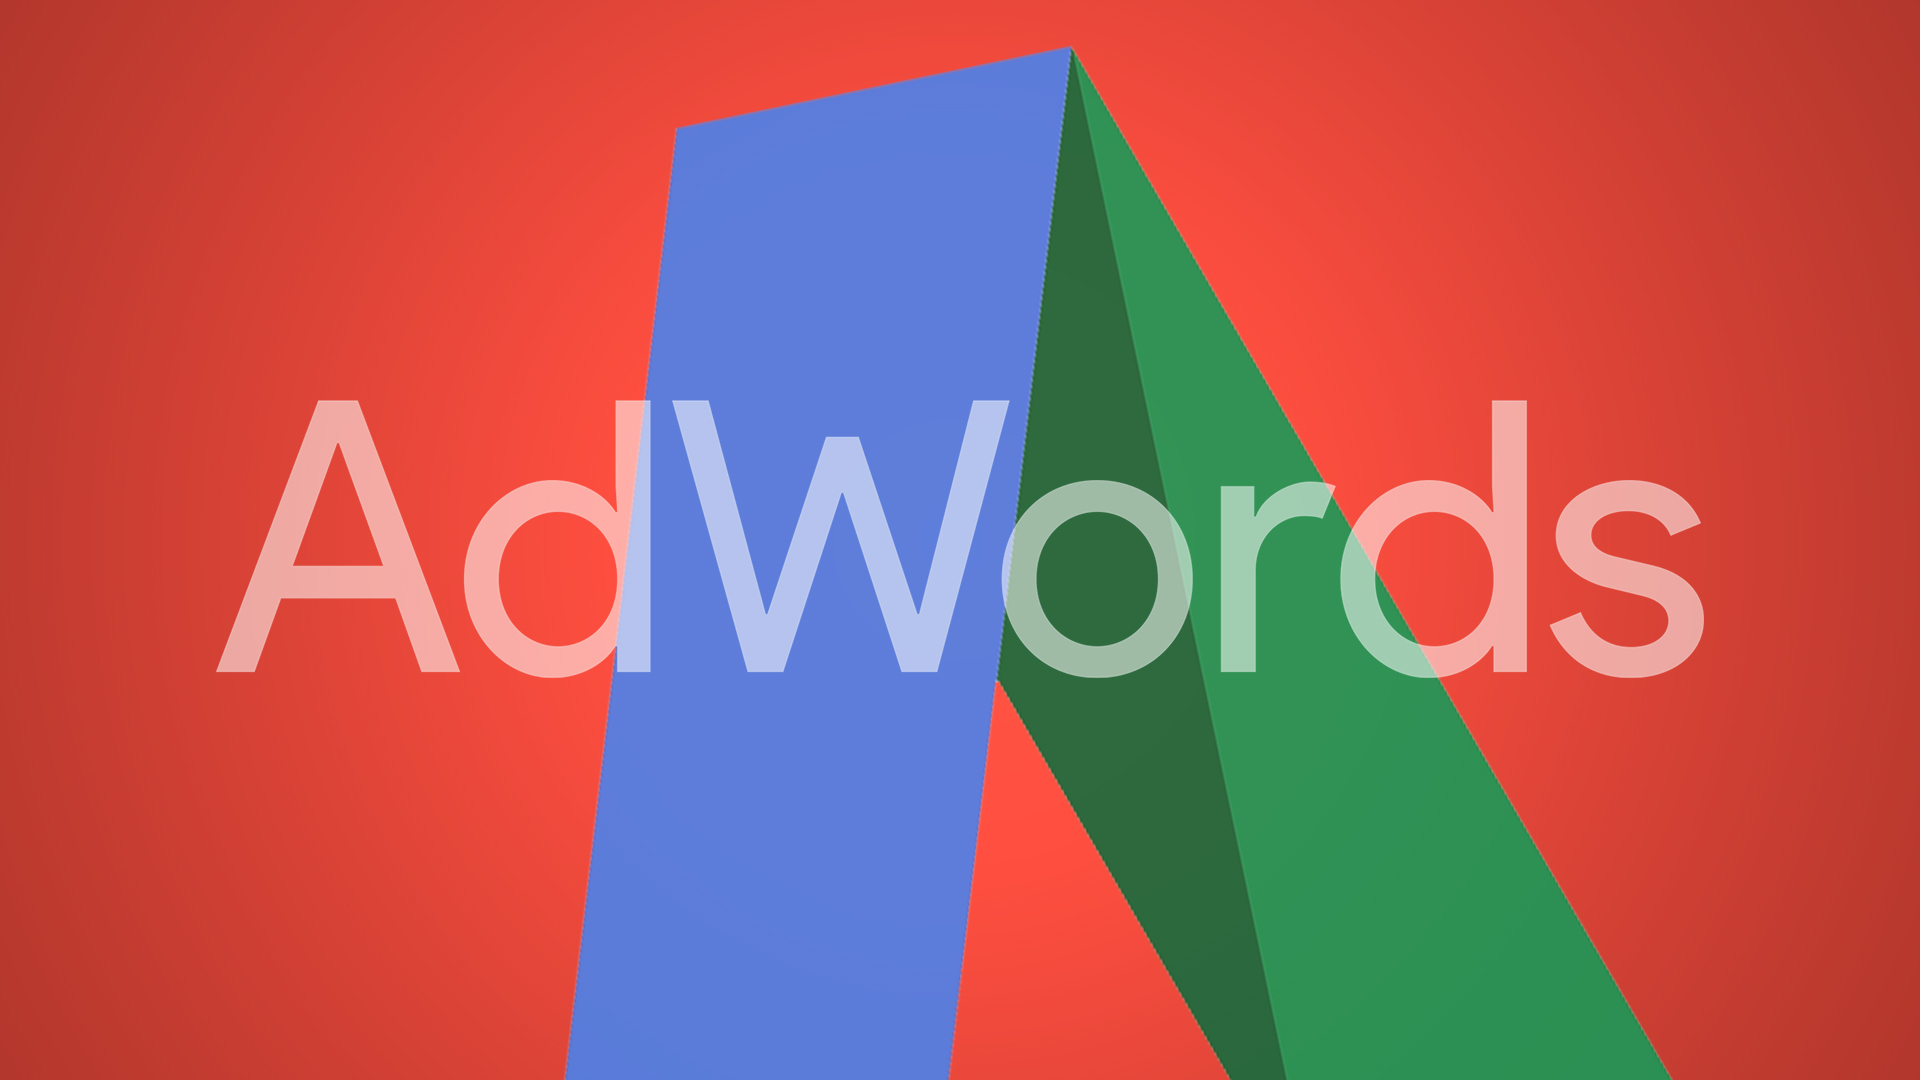 google-adwords-red2-1920